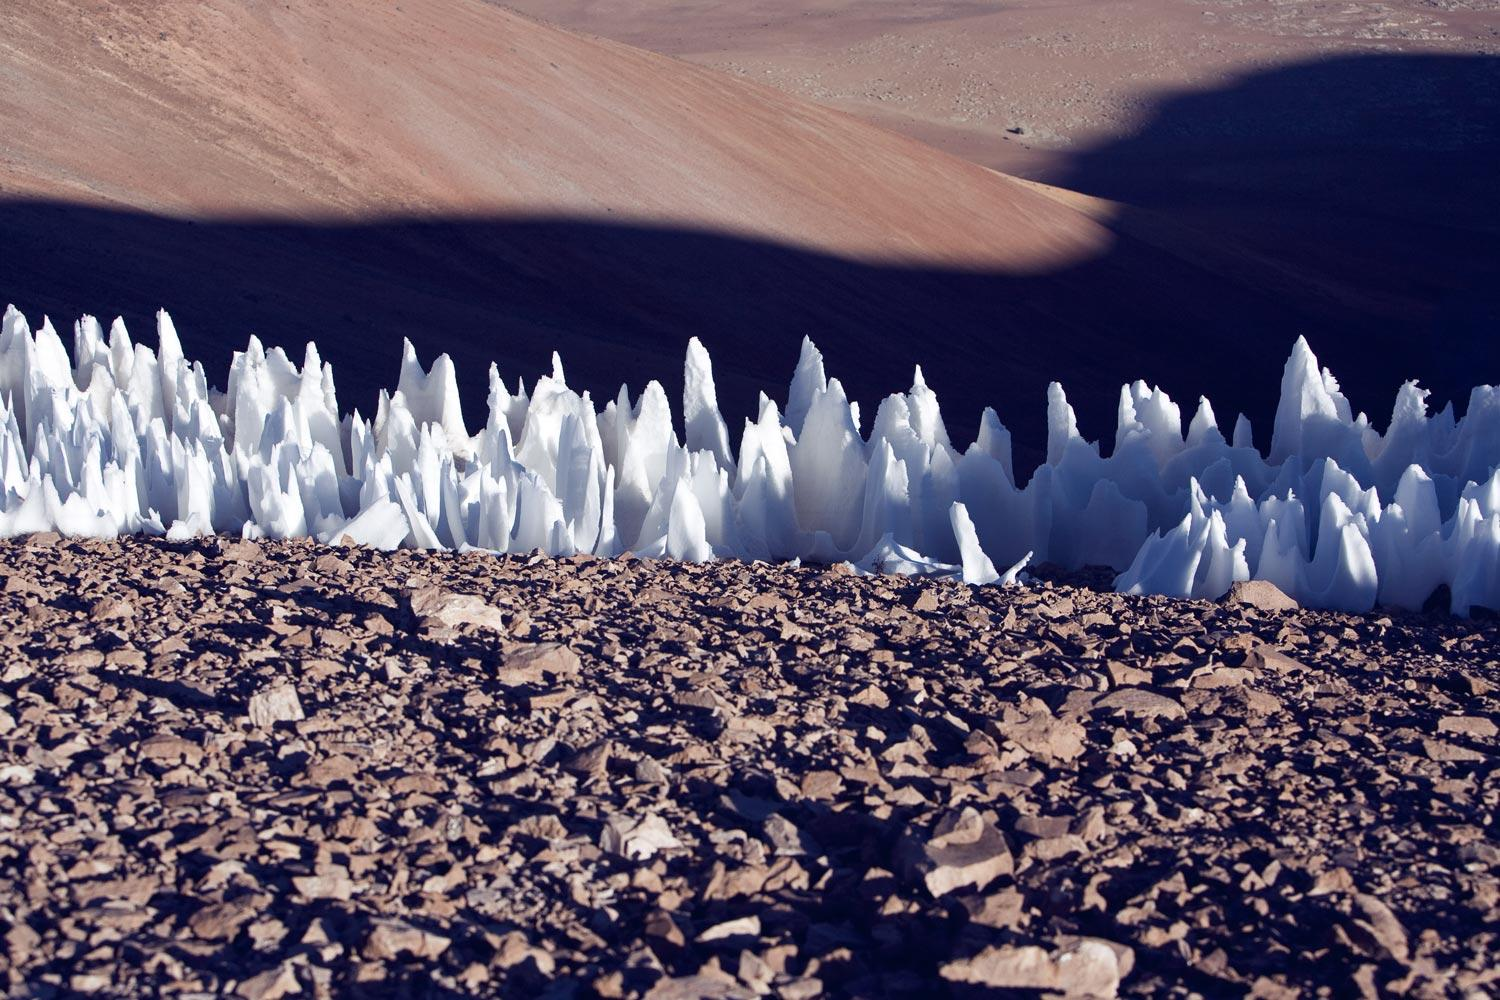 These natural ice spikes, called penitentes – which are several feet tall – are located on a dry plain of Chile. Could similar features on a moon of Jupiter create landing hazards for a NASA mission?